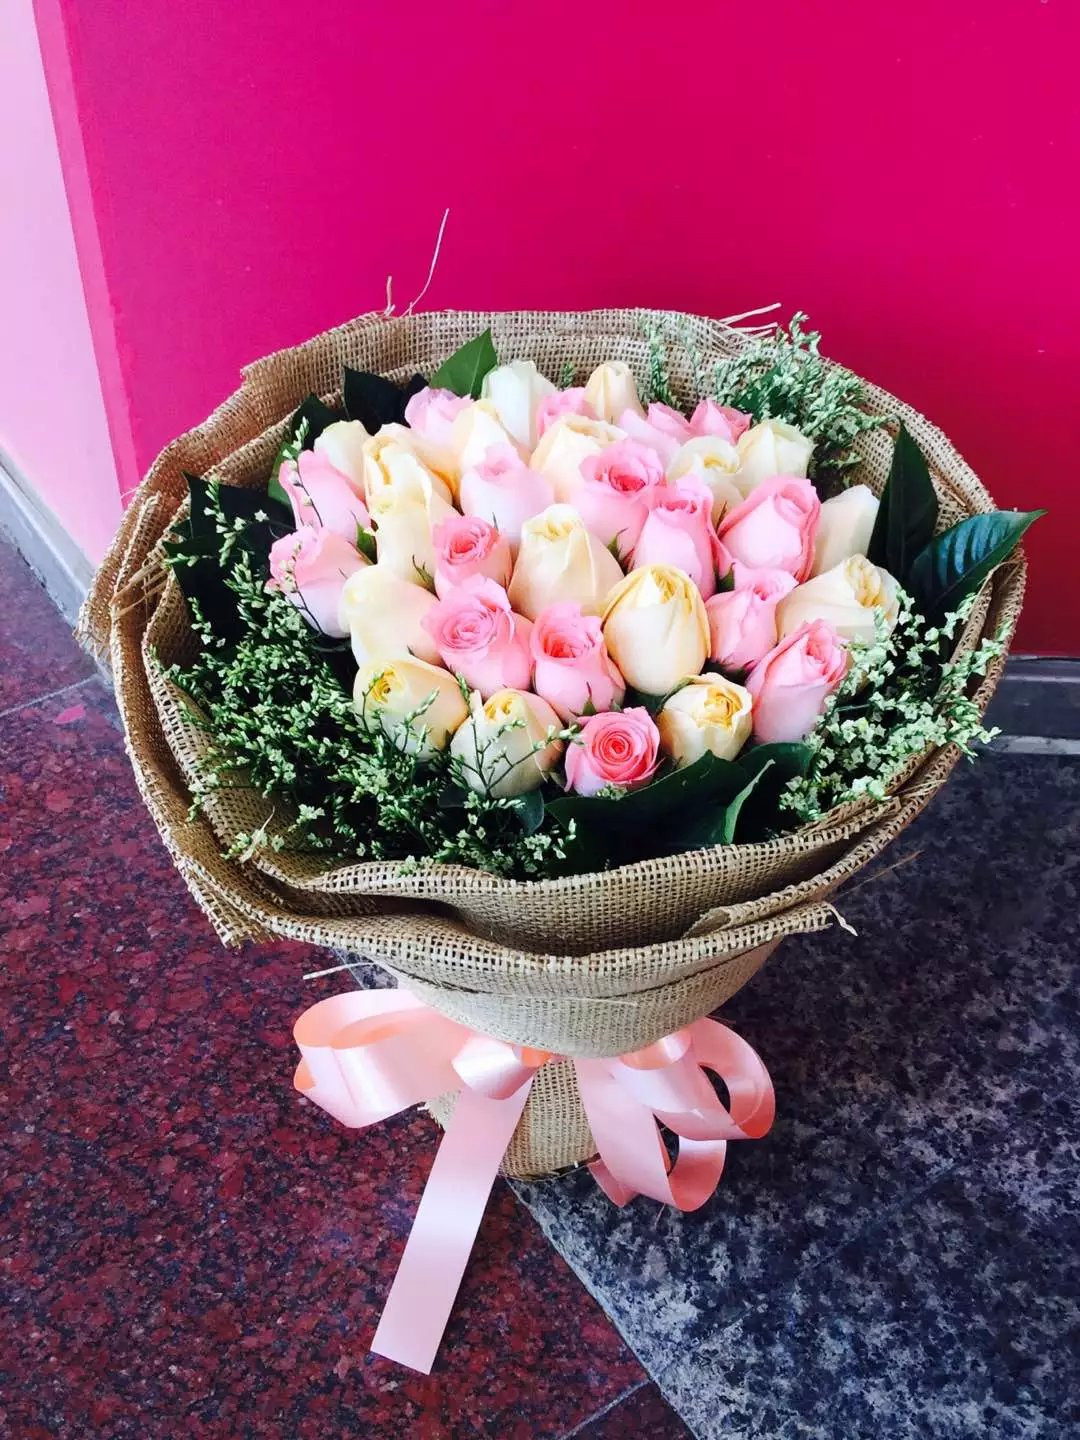 Send flowers to china best china online local flower shop delivery when you want send flowers now you most search send flowers to country or city on internetthen you will find many websites say they can deliver flowers izmirmasajfo